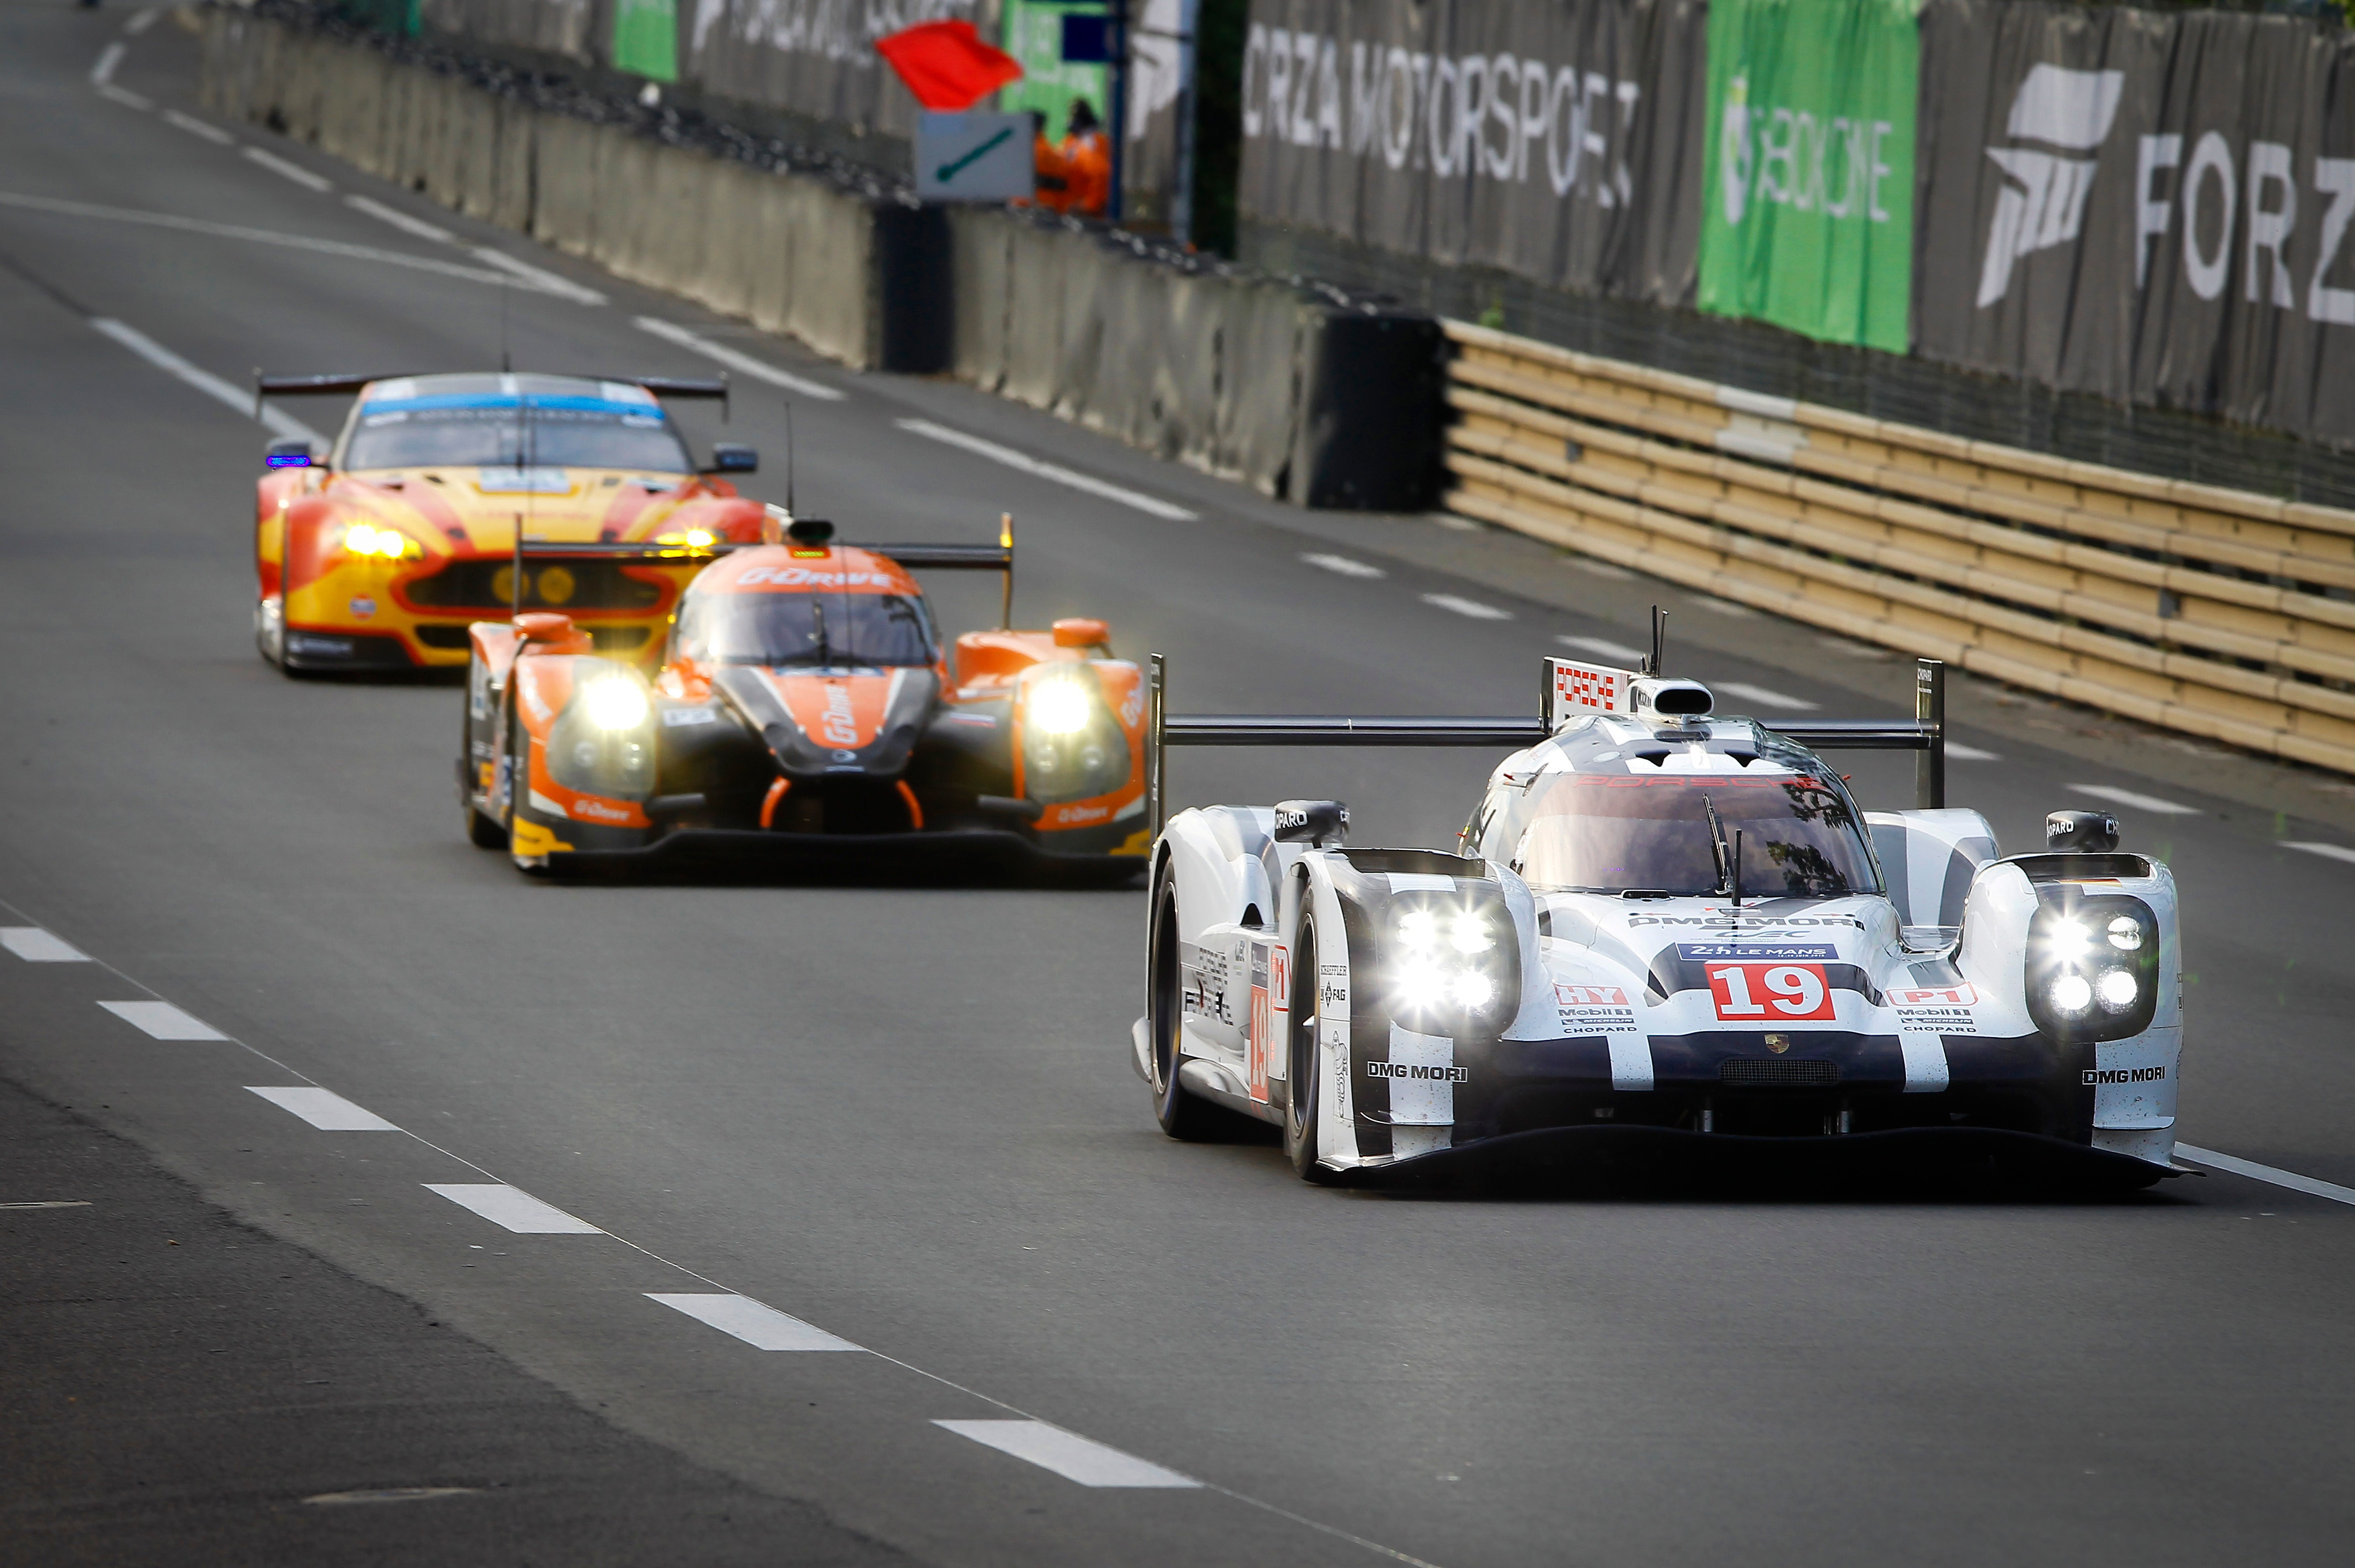 Hybrid system is no longer the push-to-pass tool it used to be in LMP1 era